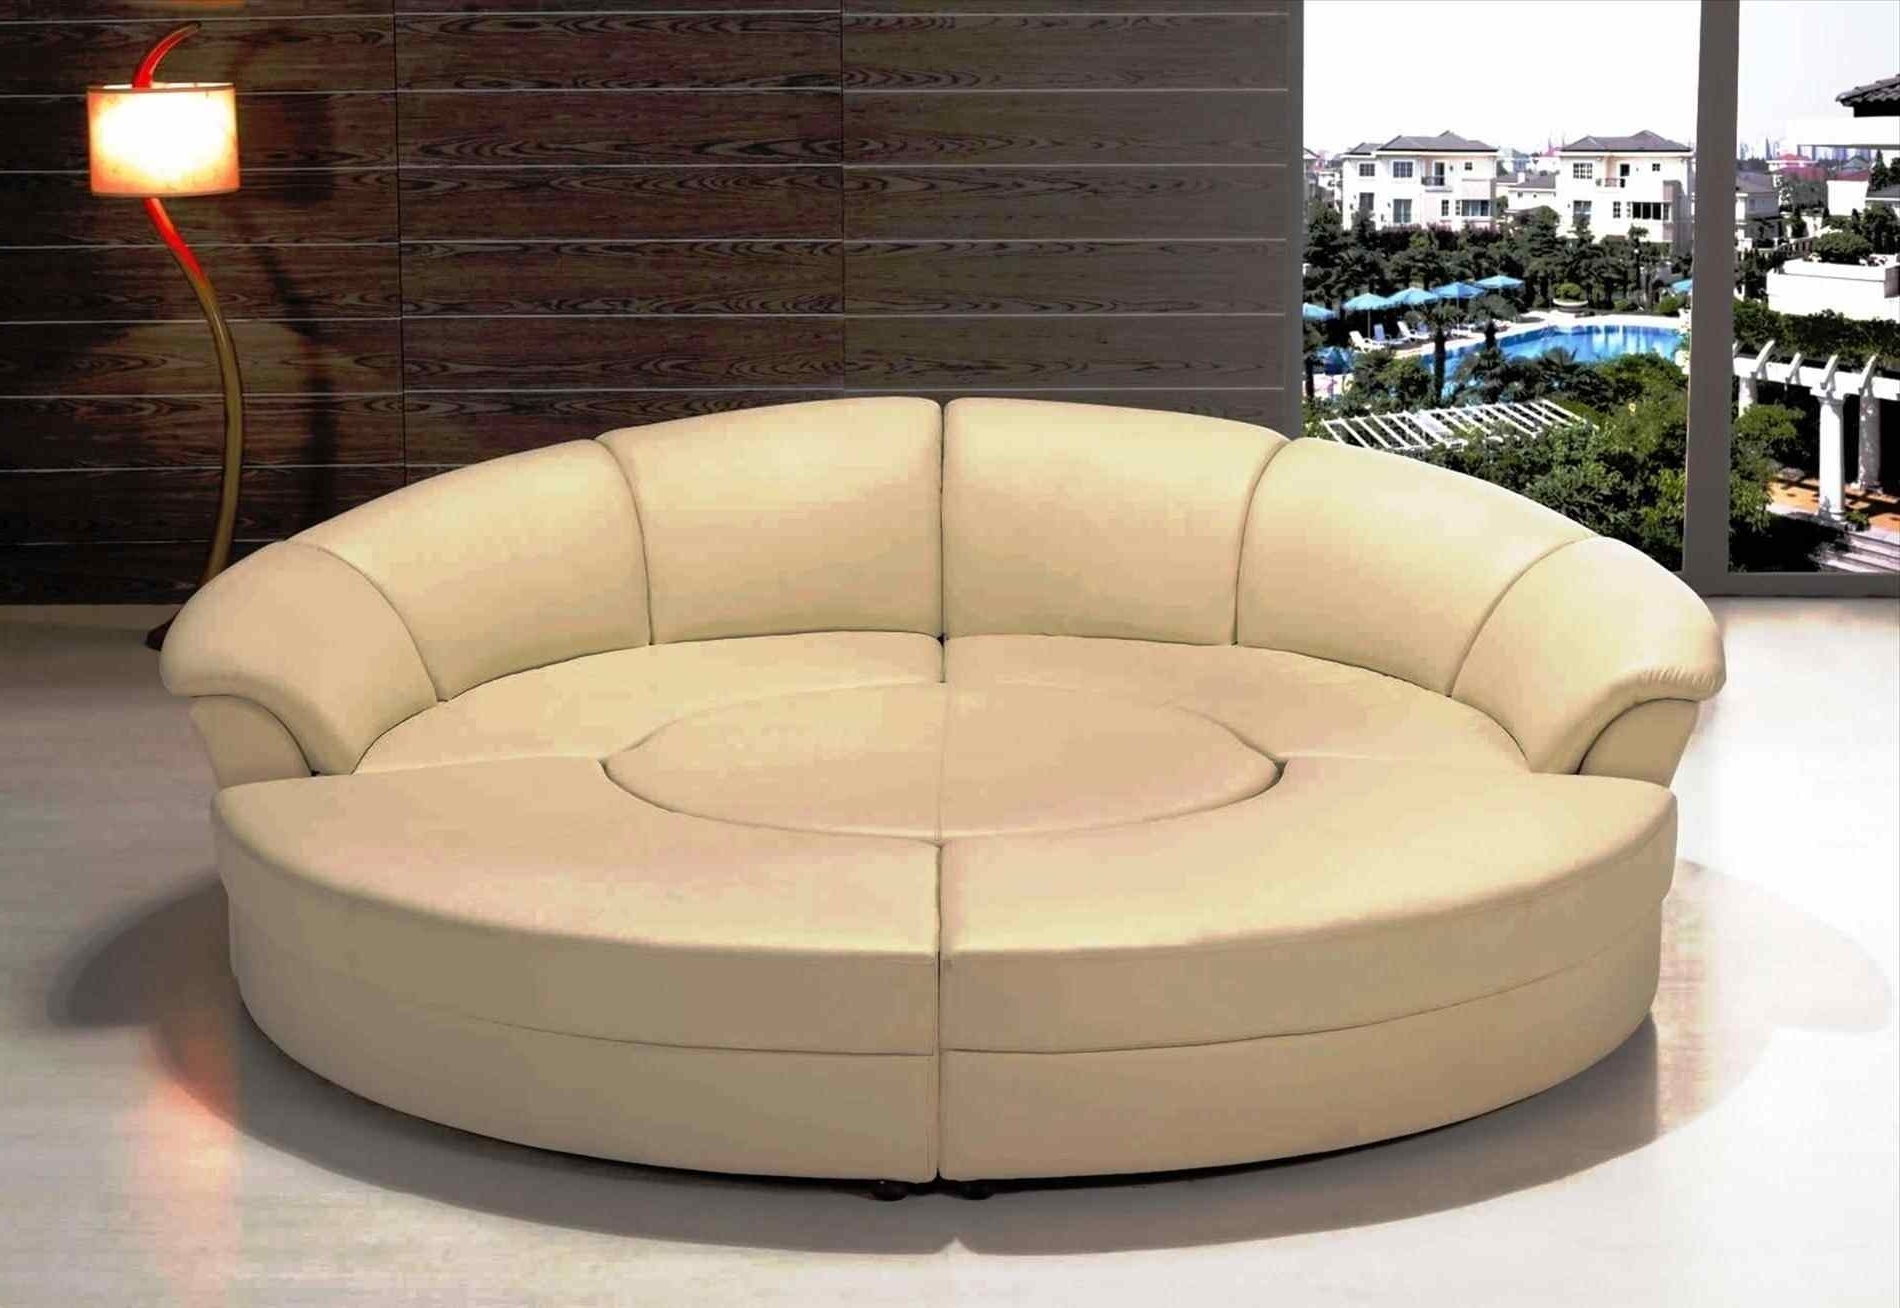 Circle Sofas Within 2017 Couch : Furniture Circle Couch Manstad Sofa Bed For Cozy Living (View 5 of 15)